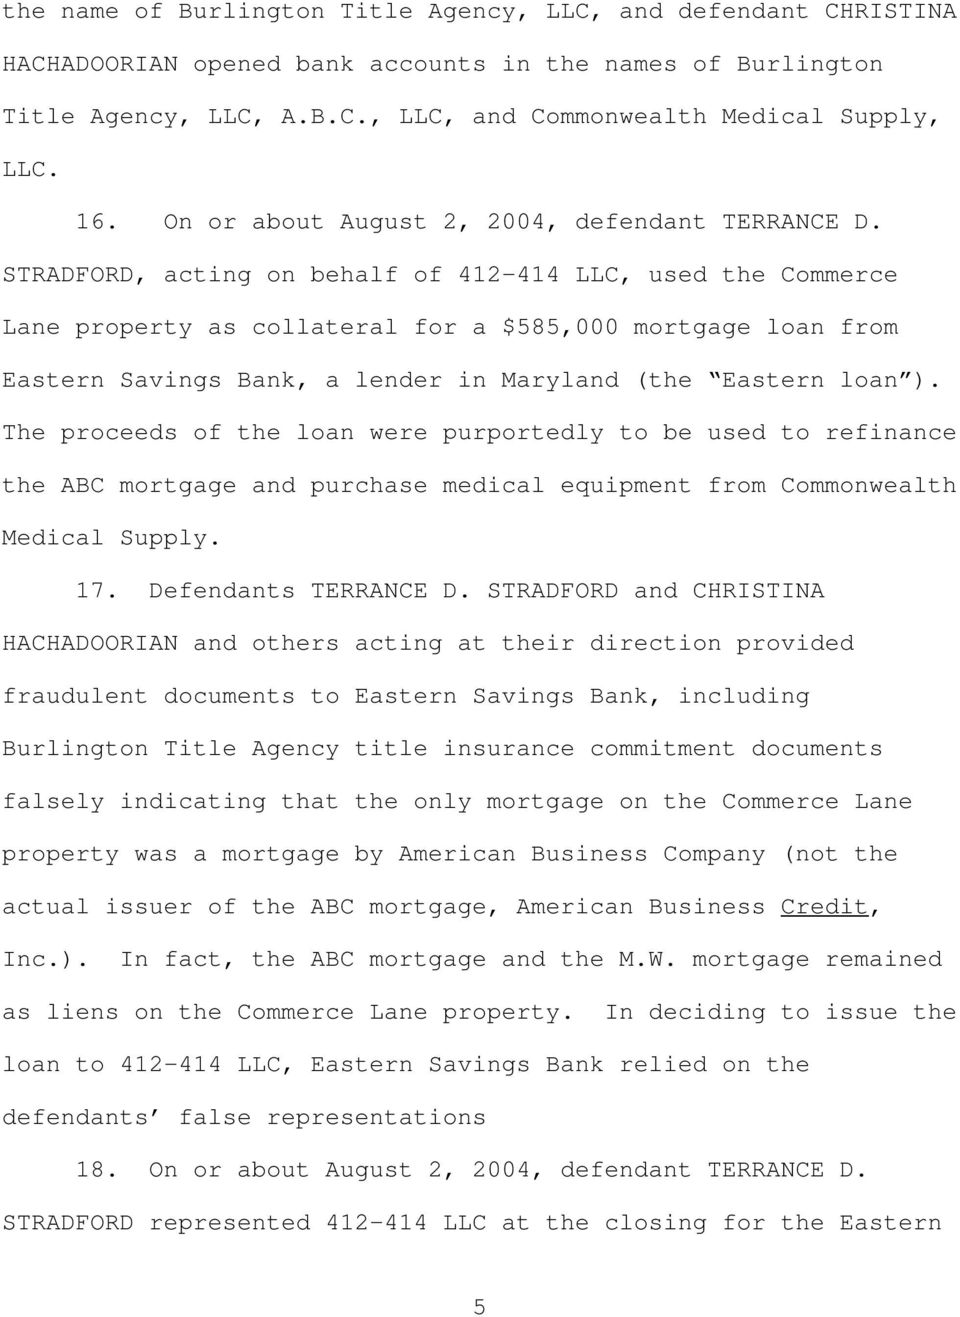 STRADFORD, acting on behalf of 412-414 LLC, used the Commerce Lane property as collateral for a $585,000 mortgage loan from Eastern Savings Bank, a lender in Maryland (the Eastern loan ).